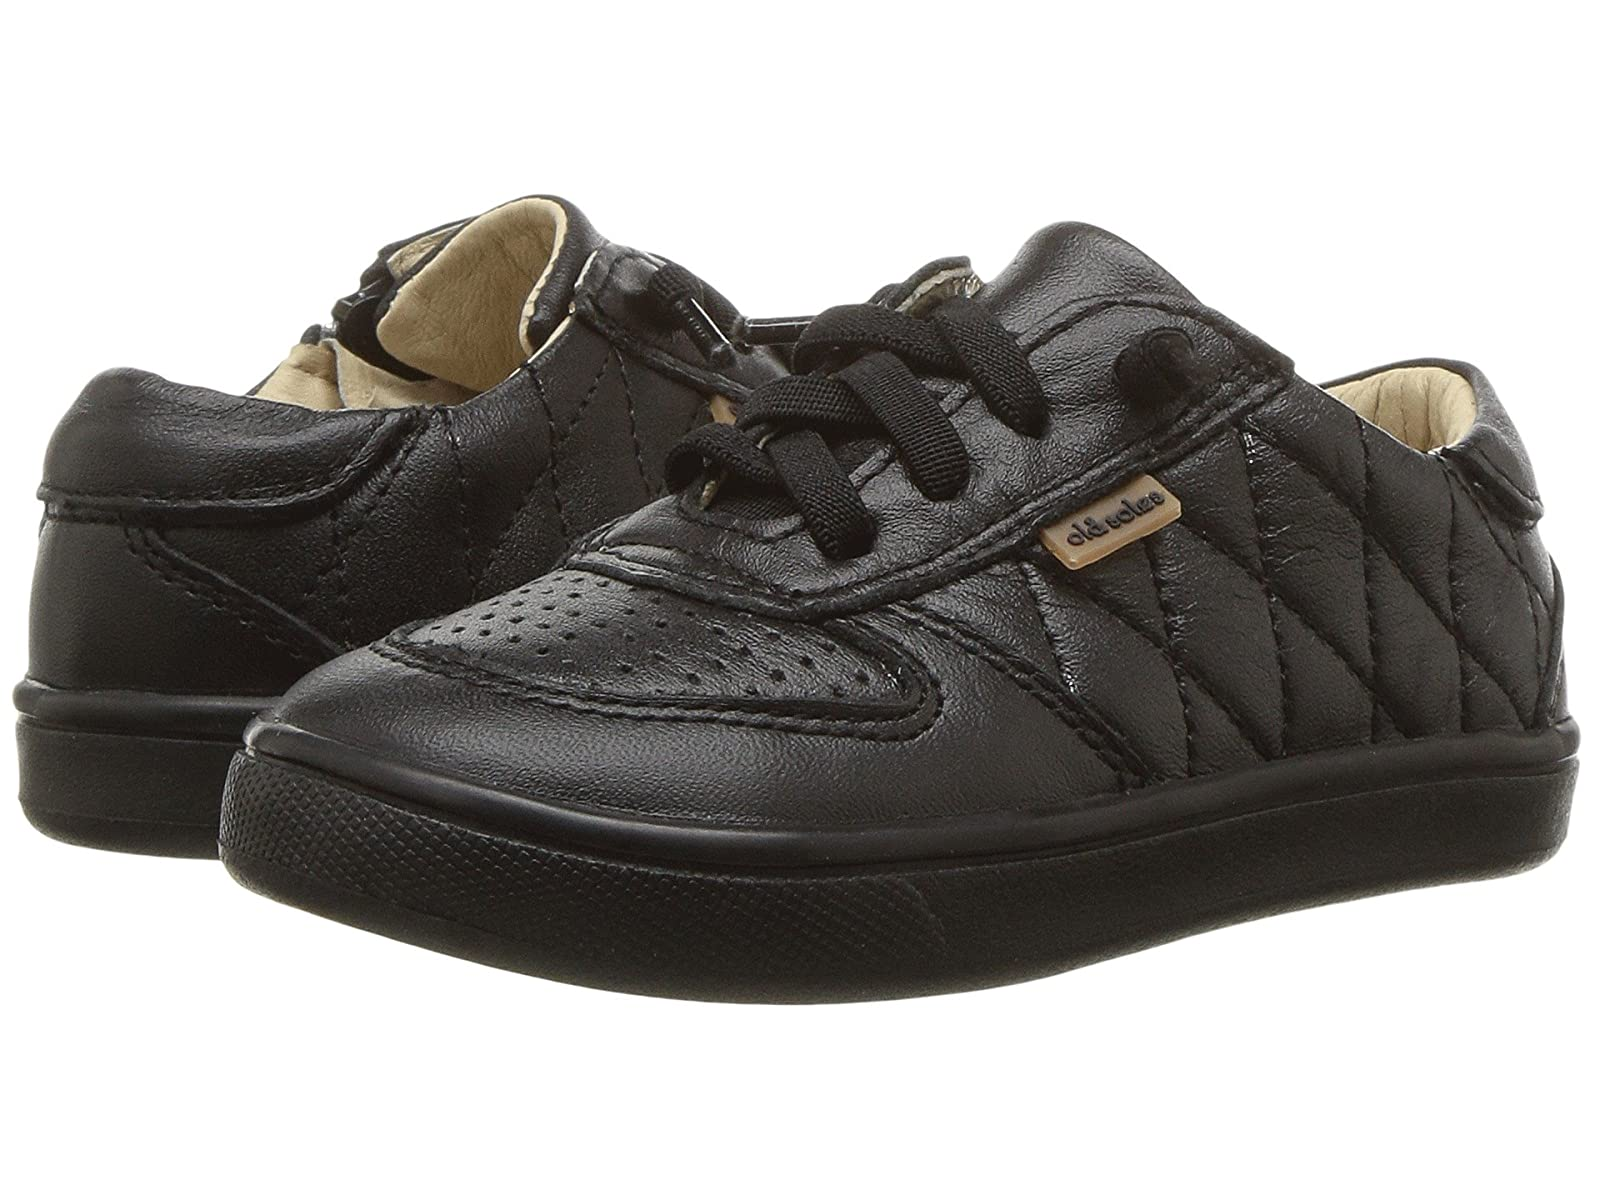 Old Soles Urban Quilt (Toddler/Little Kid/Big Kid)Cheap and distinctive eye-catching shoes